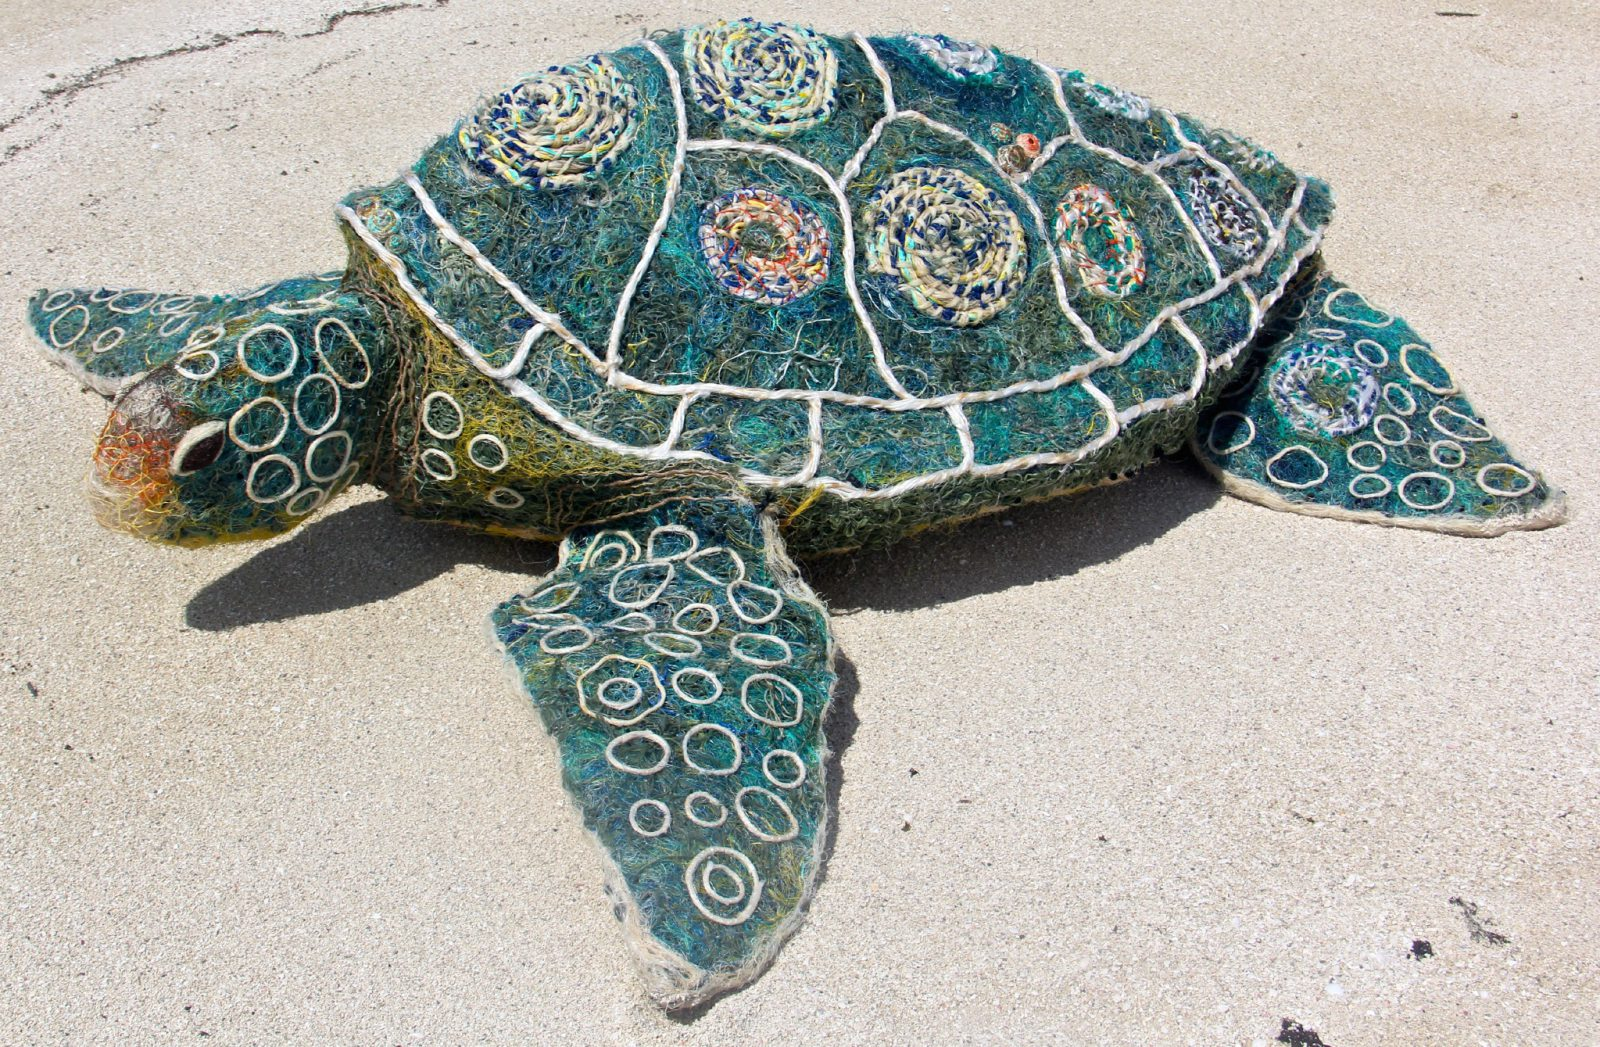 Oeuvre Collaborative / Emarr la tortue, 2017. Filets de pêche recyclés